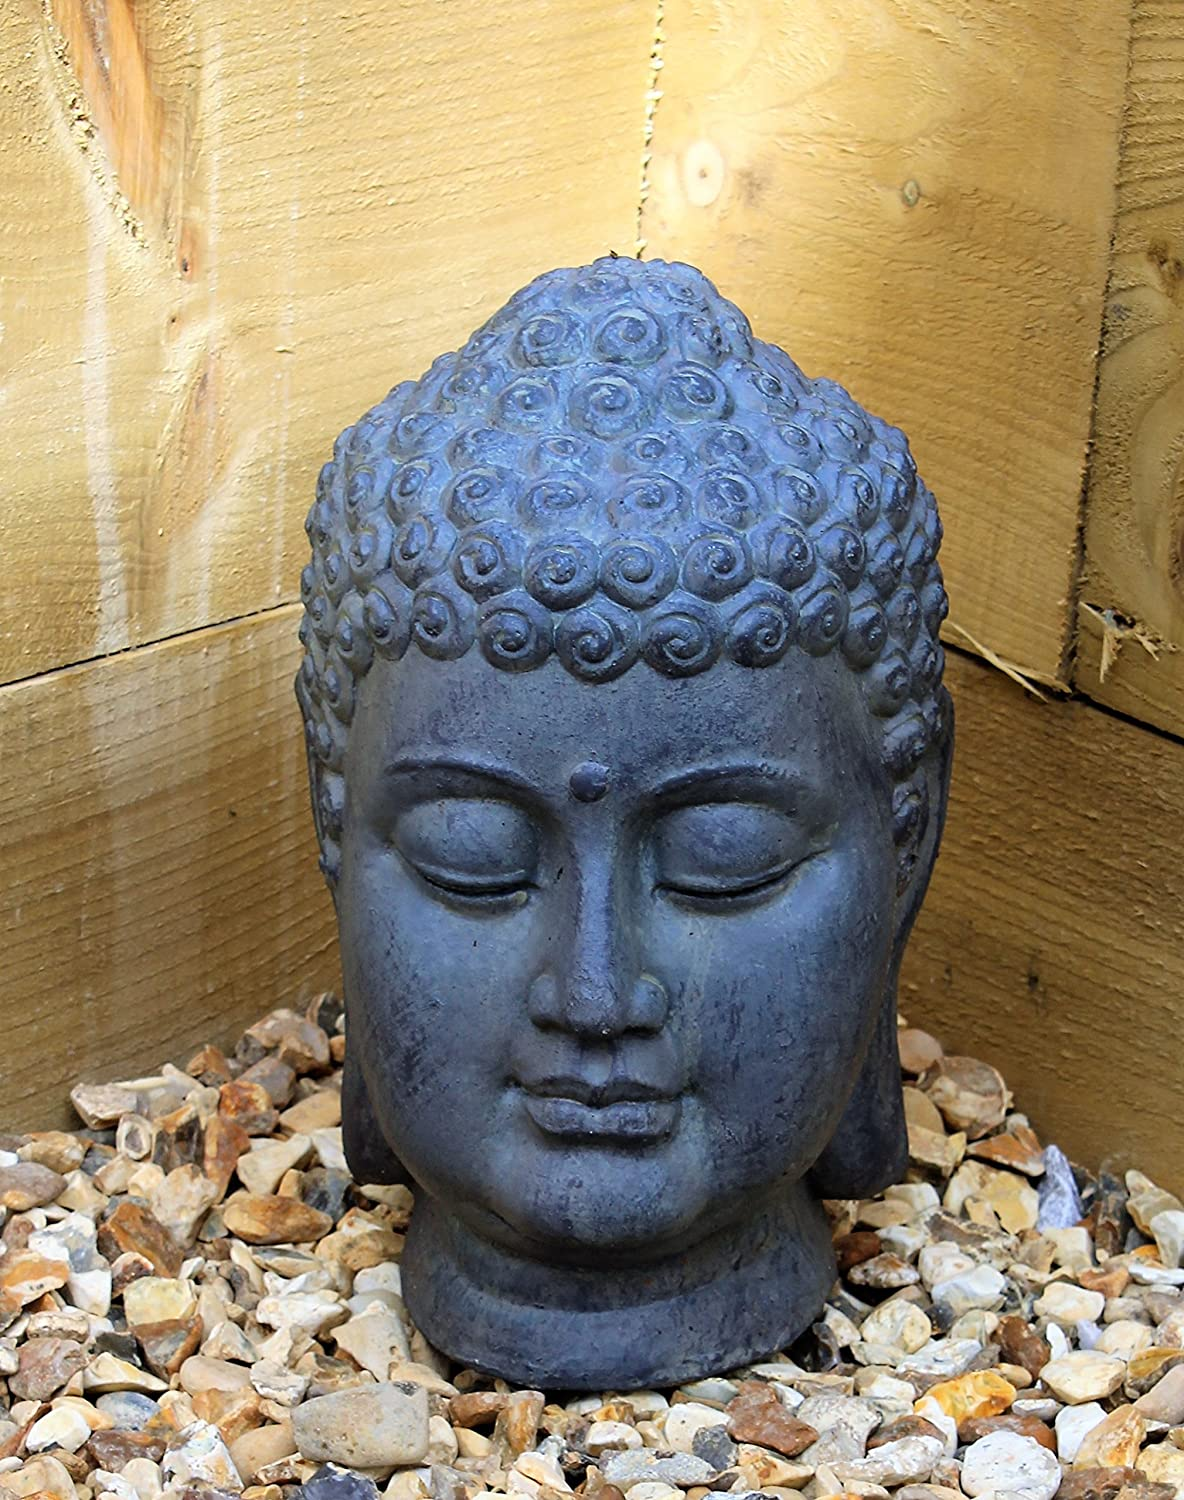 Buddha Head Sculpture Ornament indoor outdoor garden Home Decor Stone Ceramic Home and Garden Products Ltd